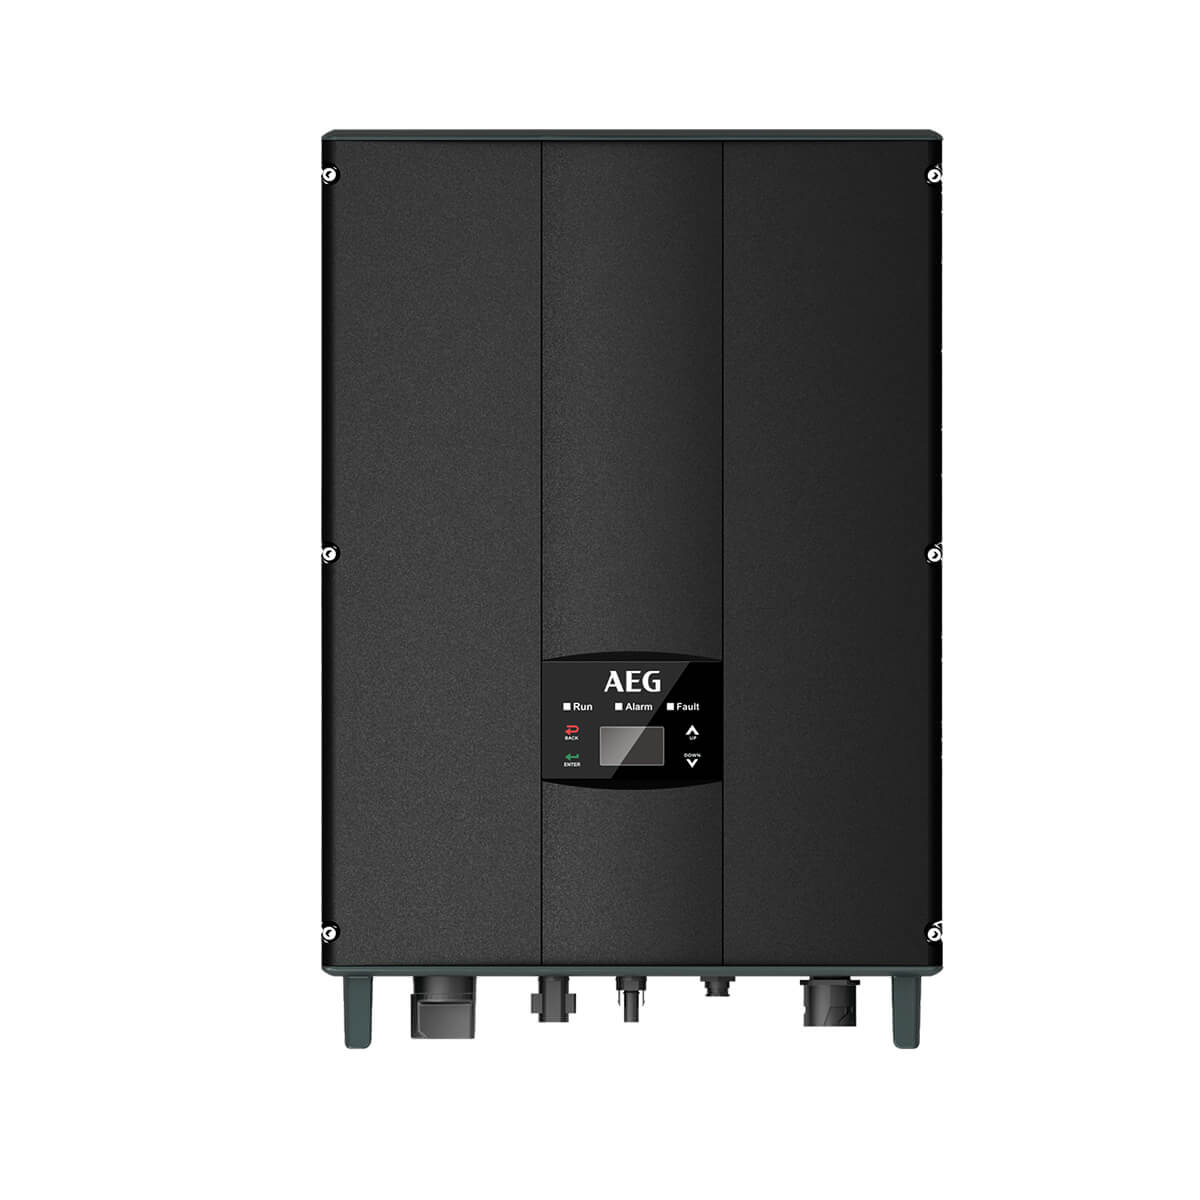 aeg 4kW trifaz inverter datasheet katalog, aeg as-ic01 4kW trifaz inverter datasheet katalog, aeg as-ic01-4000 trifaz inverter datasheet katalog, aeg as-ic01-4000 datasheet katalog, aeg as-ic01 4kW datasheet katalog